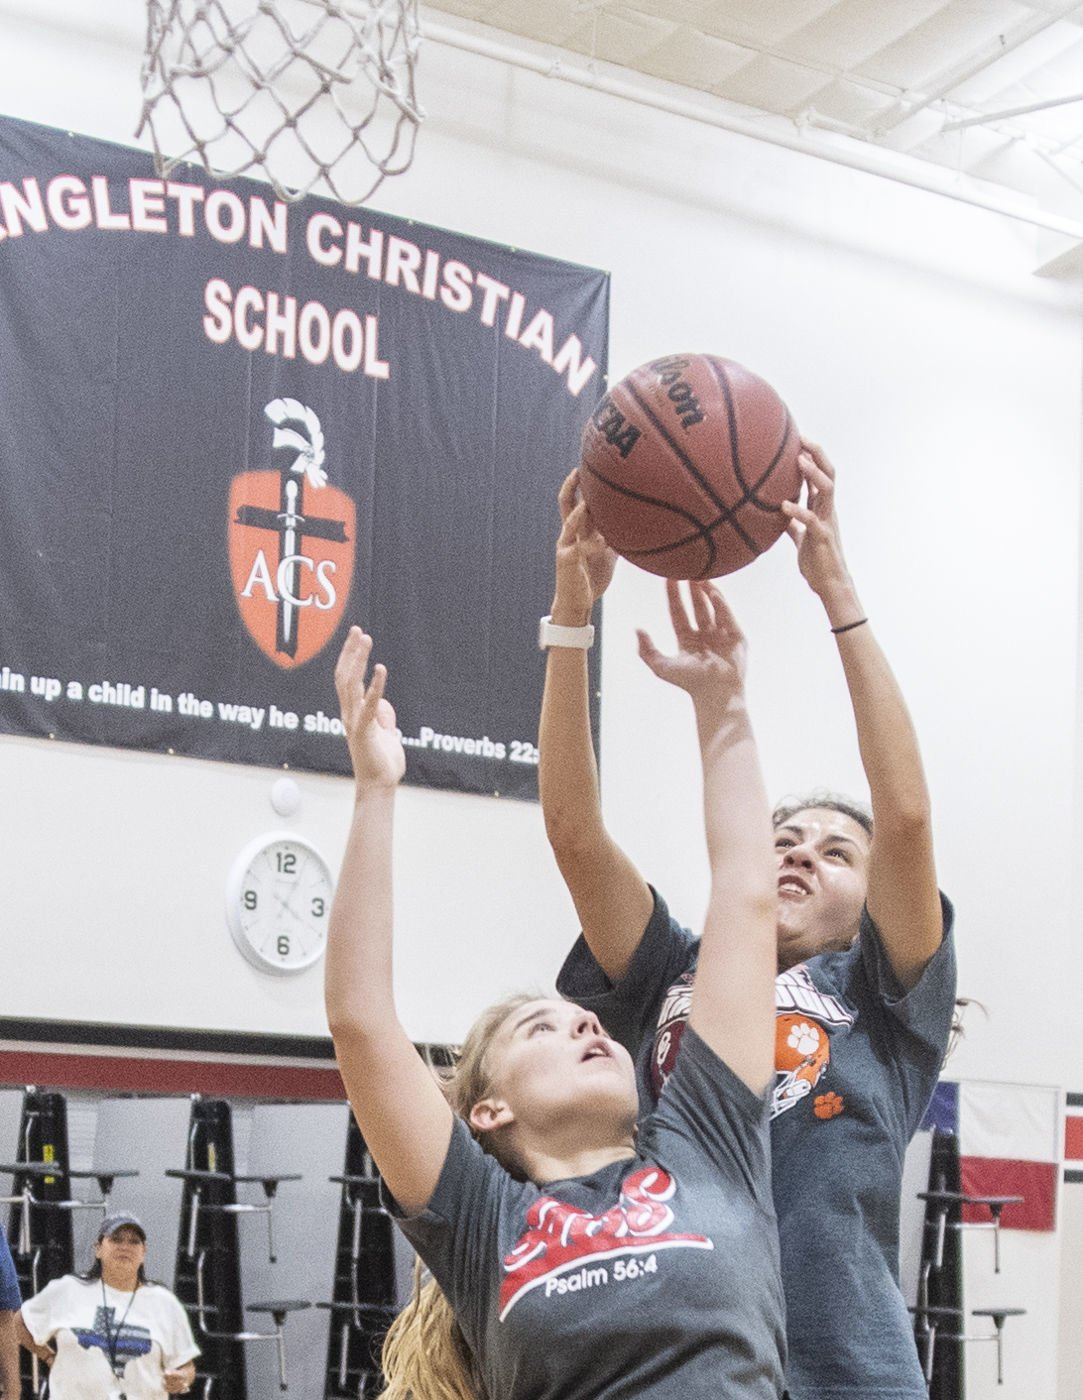 Angleton Christian Basketball